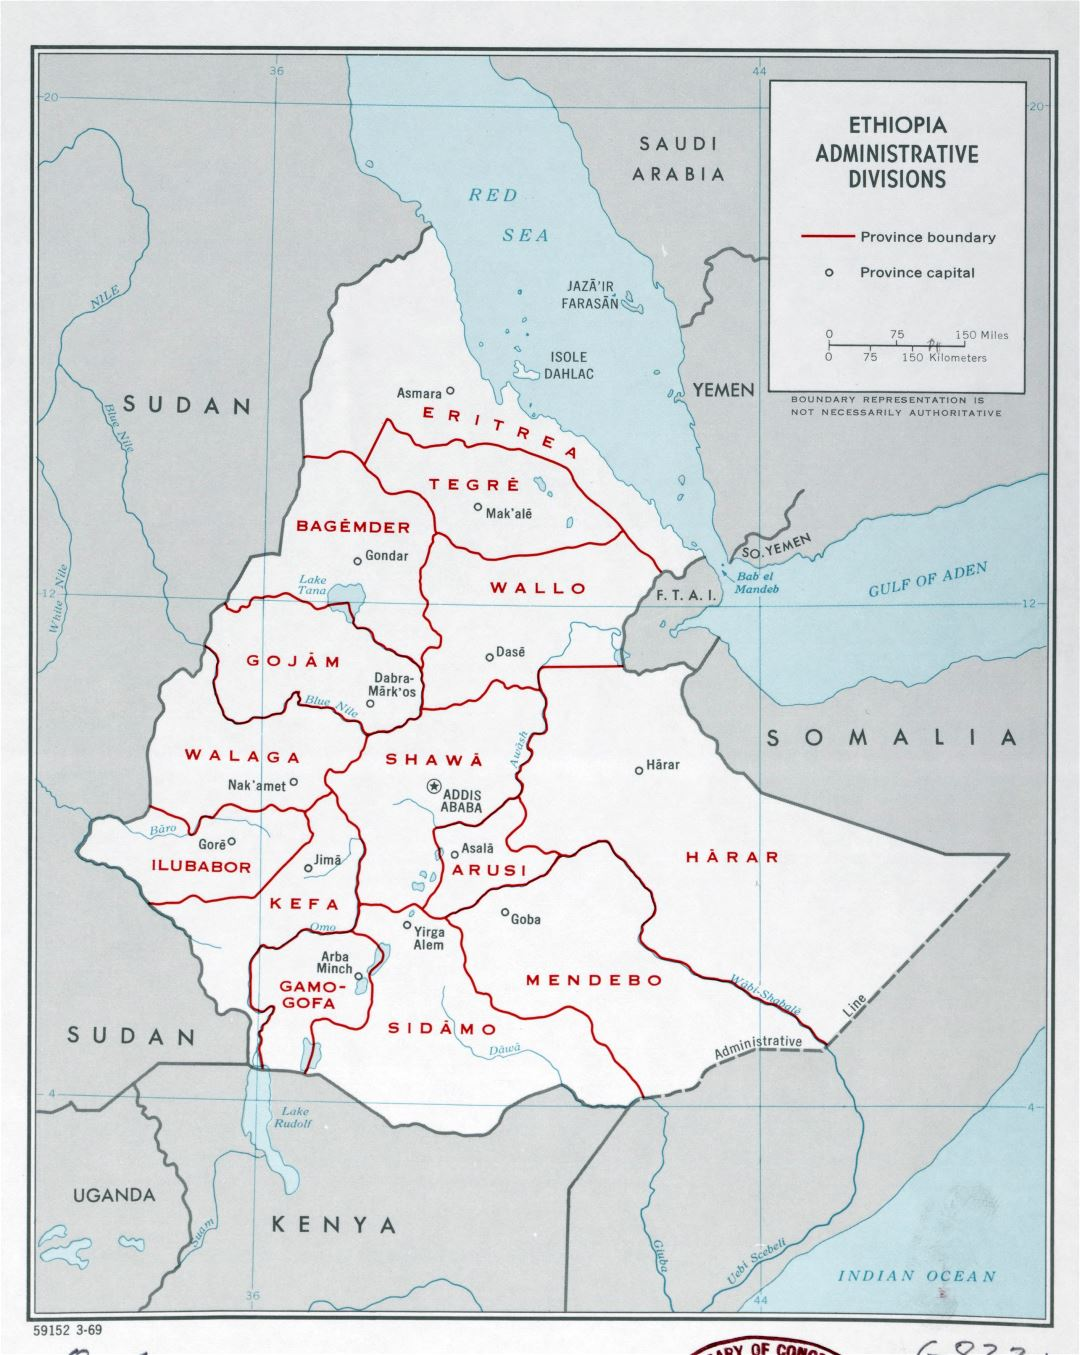 Large detailed administrative divisions map of Ethiopia - 1969